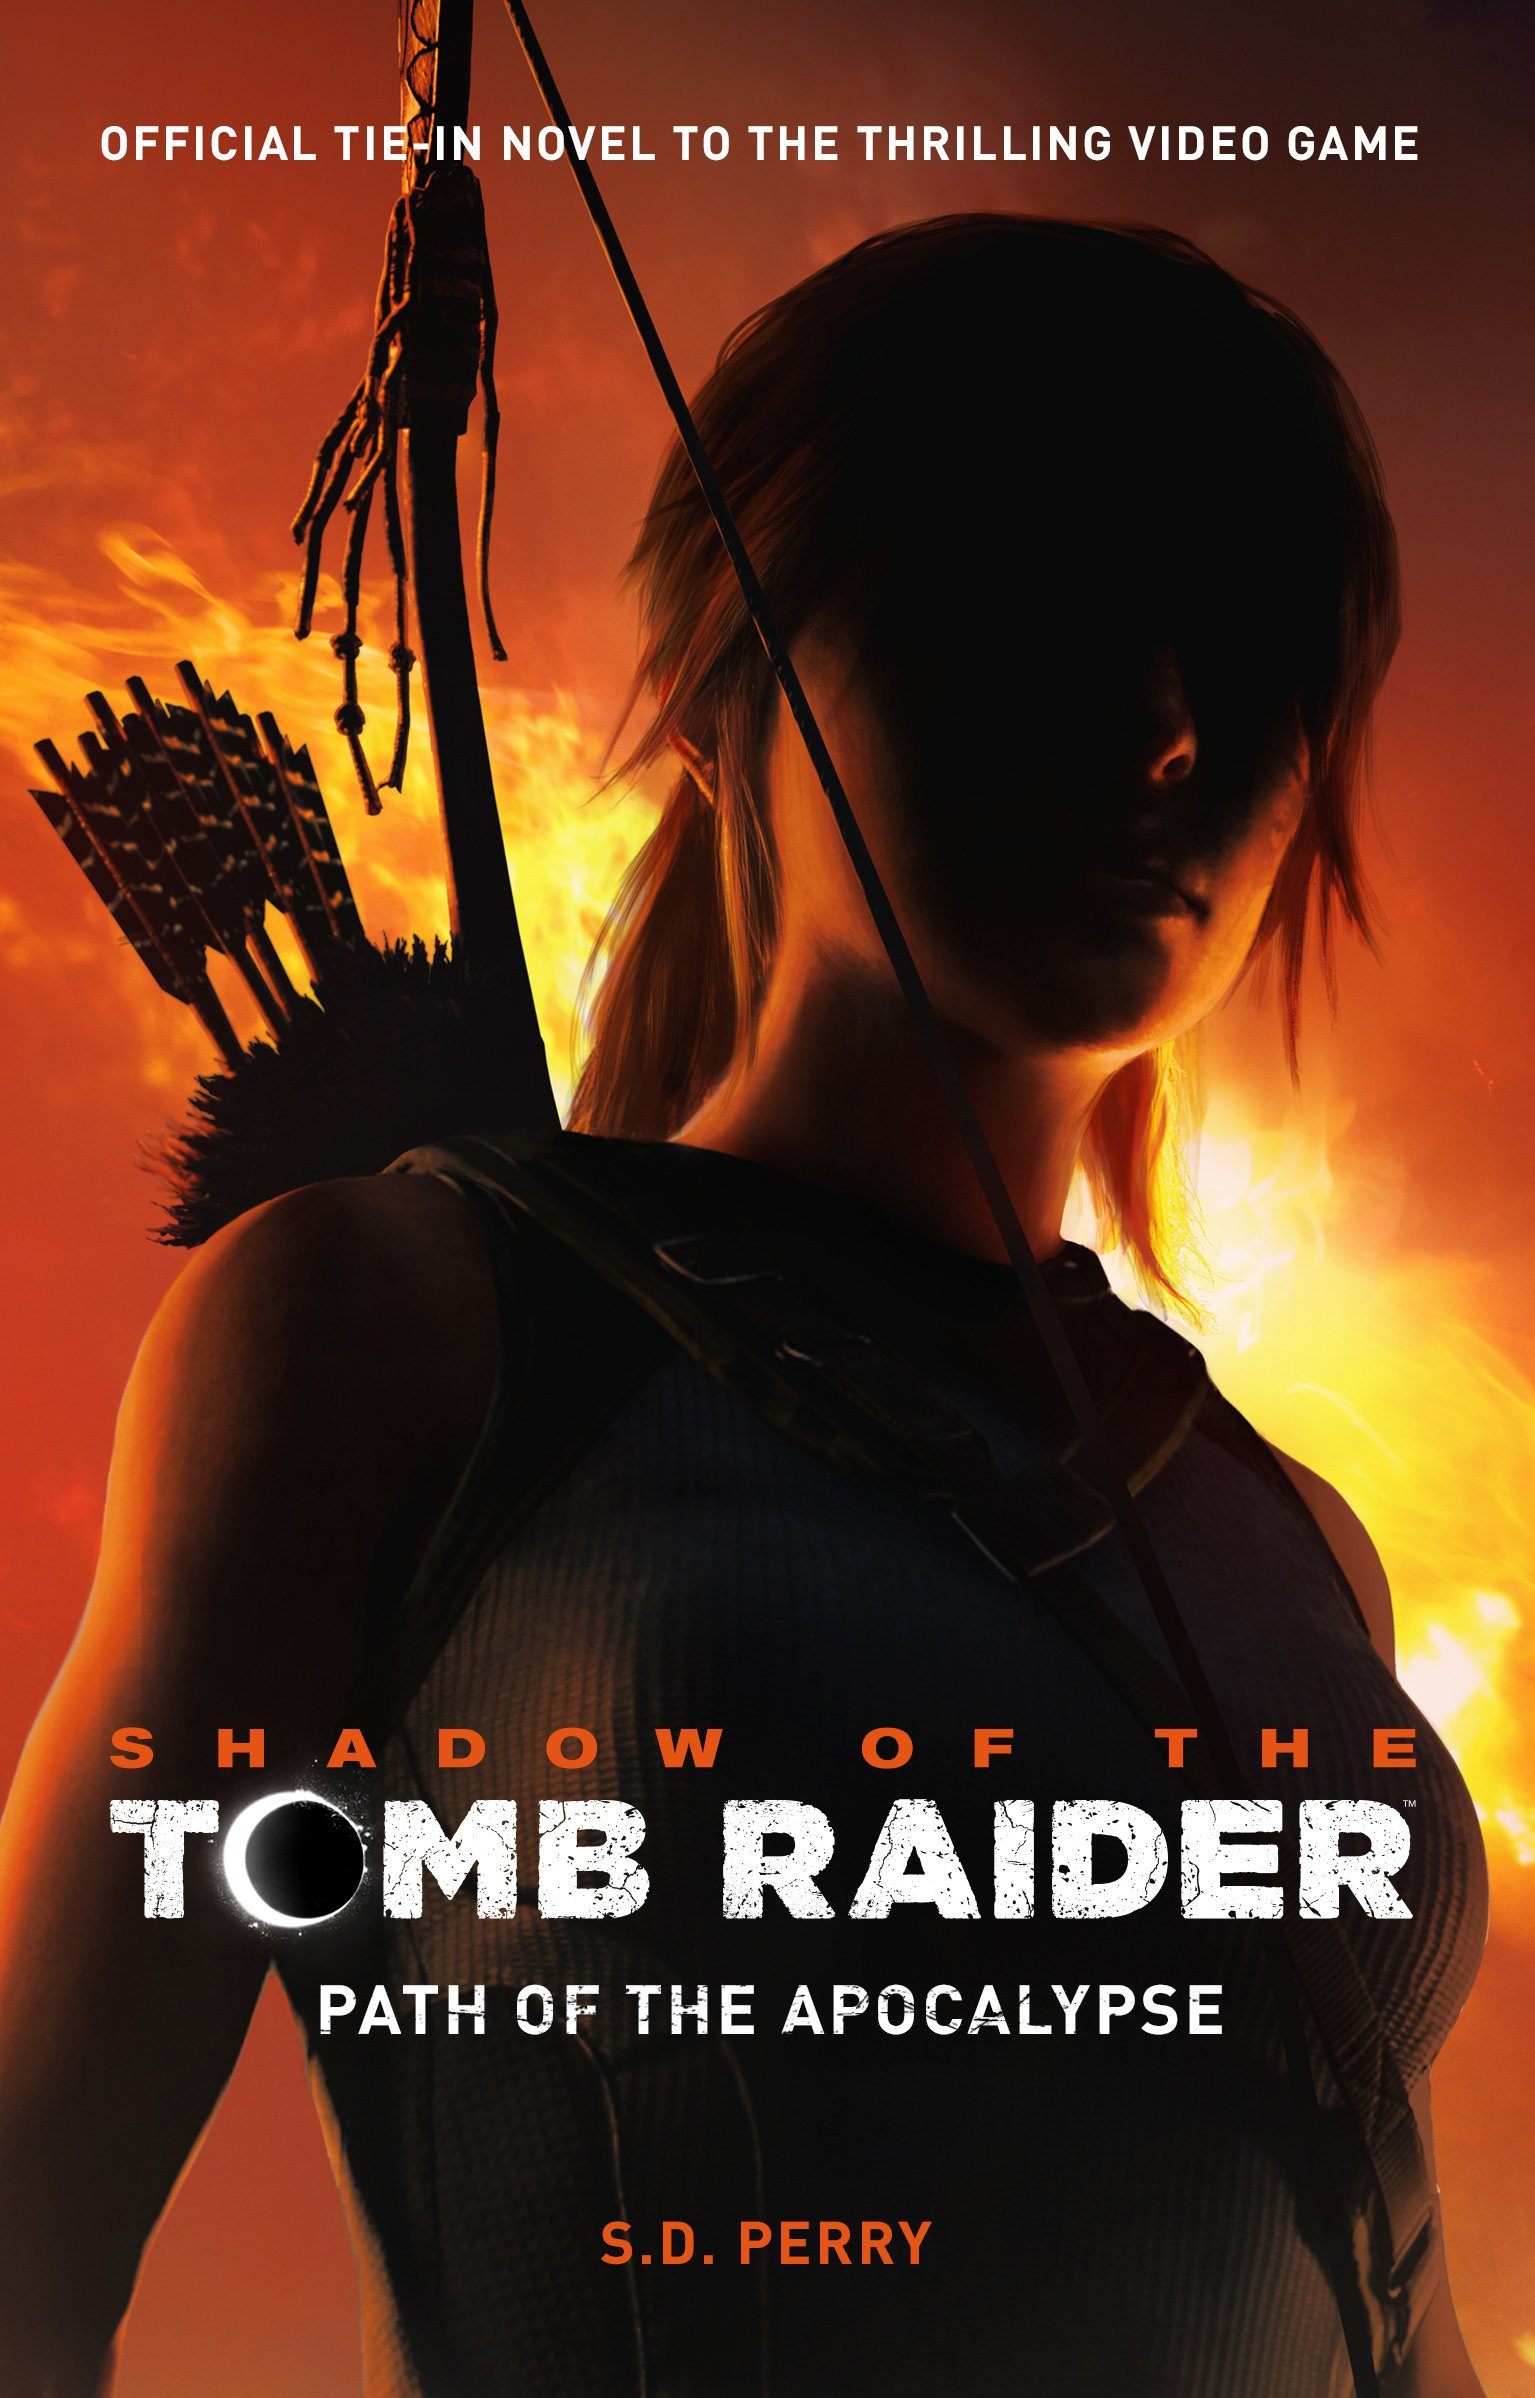 Shadow of the Tomb Raider: Path of the Apocalypse